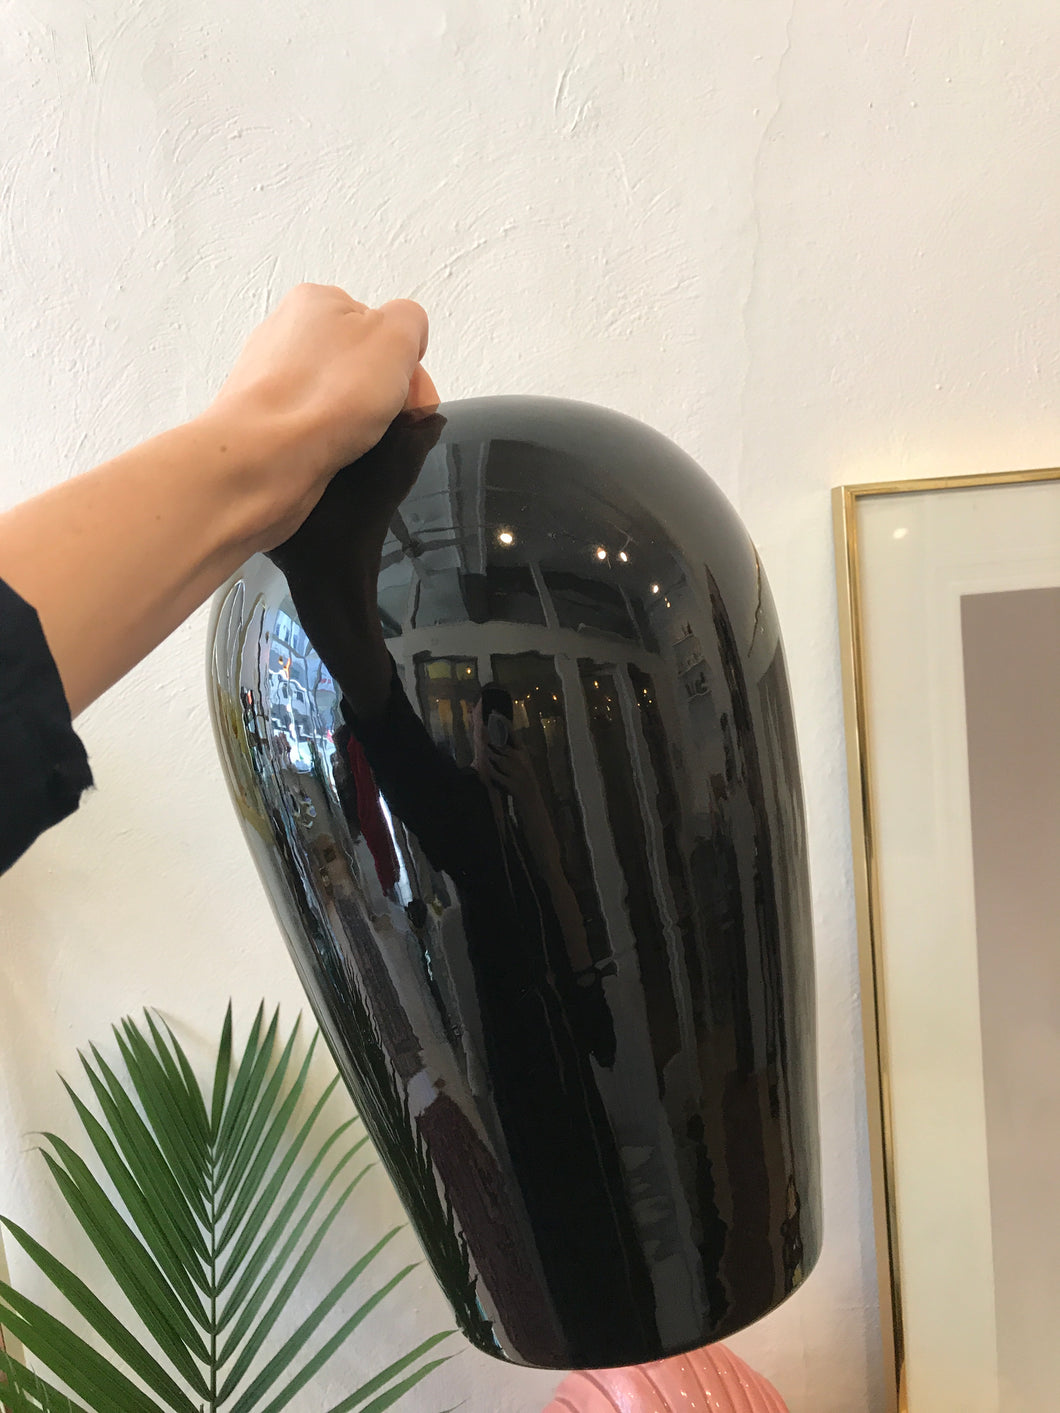 Big Black Ceramic Vase